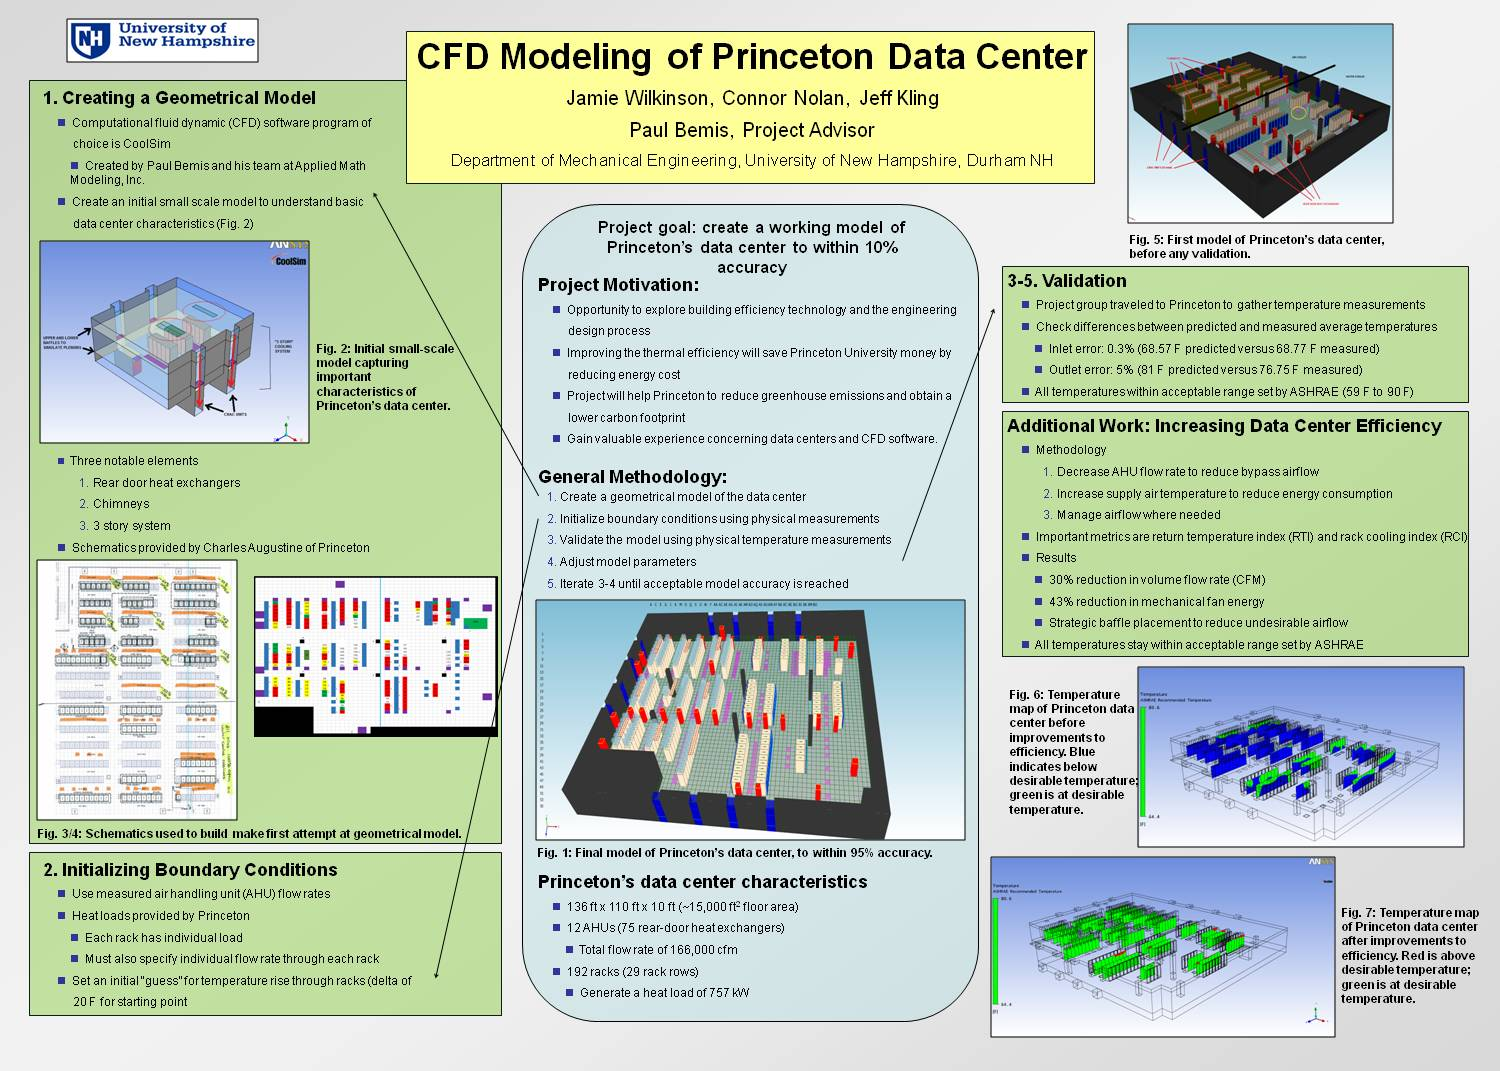 Cfd Modeling Of Princeton Data Center by jjy68